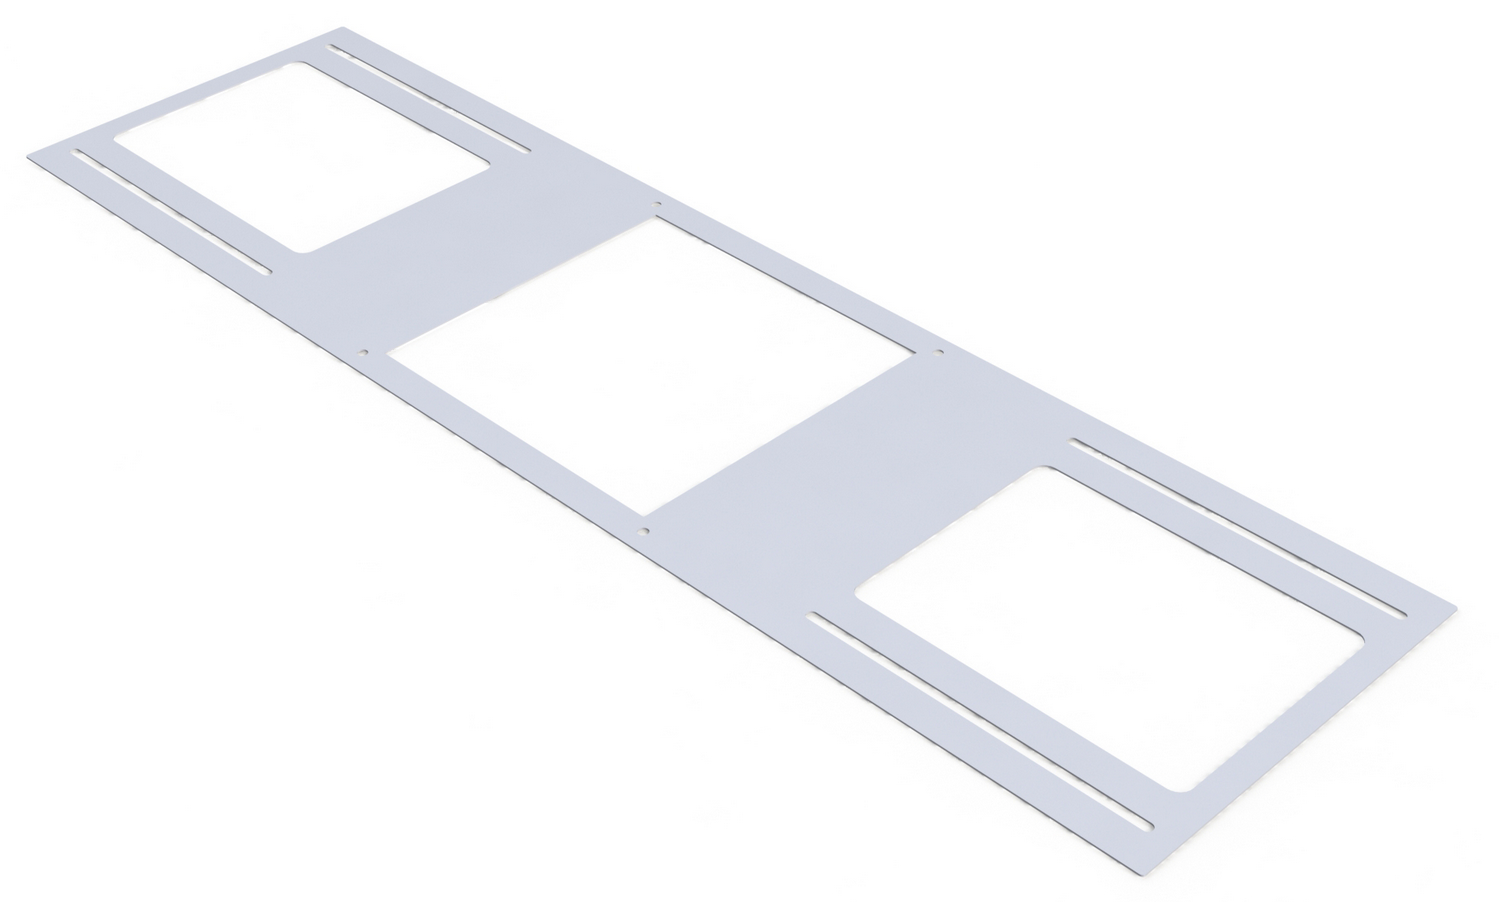 Disc Light Mounting Plate from the Brio Disc Light collection by American Lighting BR6 MP SQ